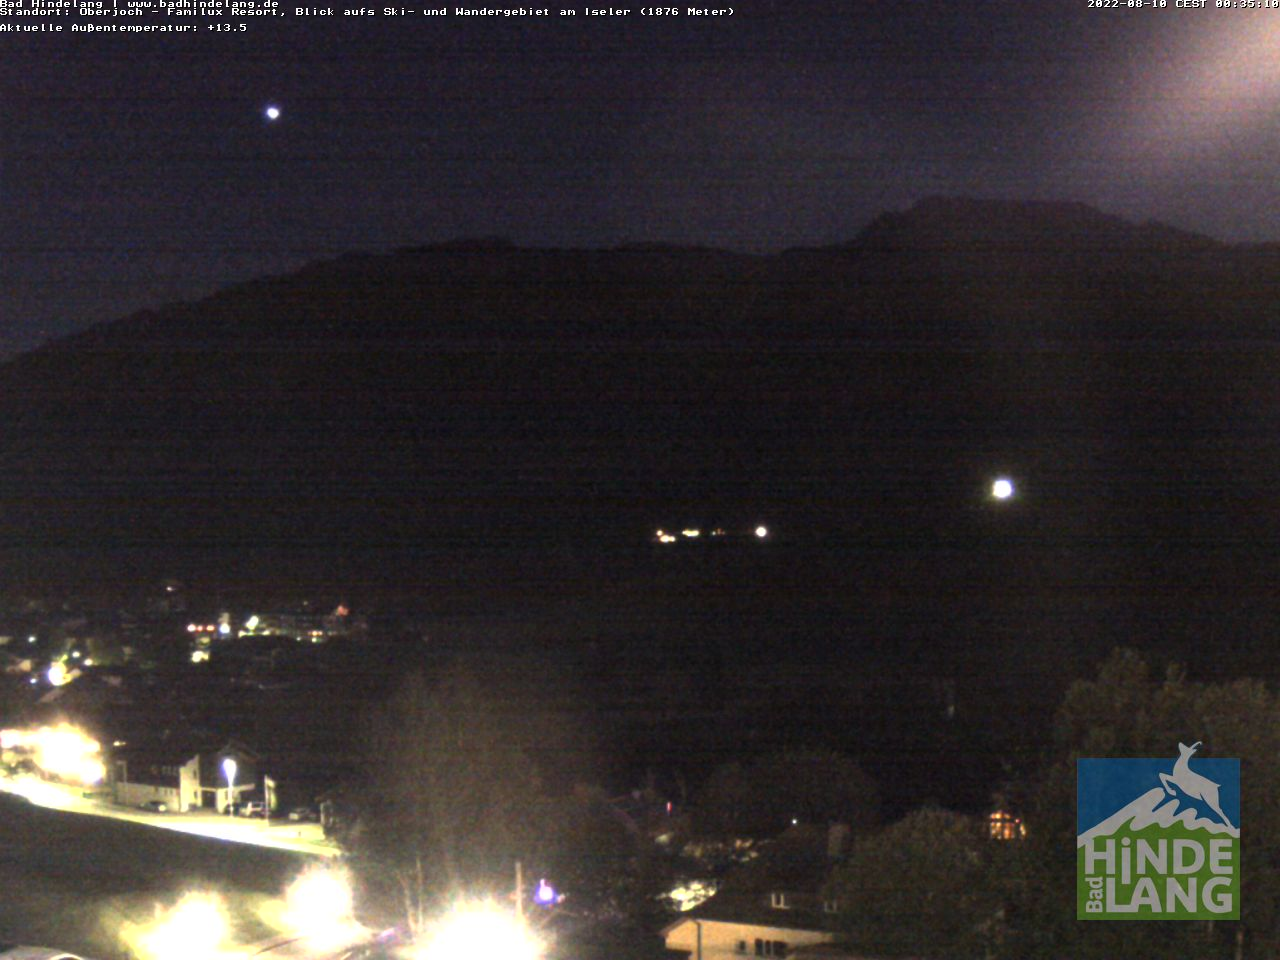 Webcam-Bild: Webcam - Bad Hindelang / Oberjoch: Kinderhotel